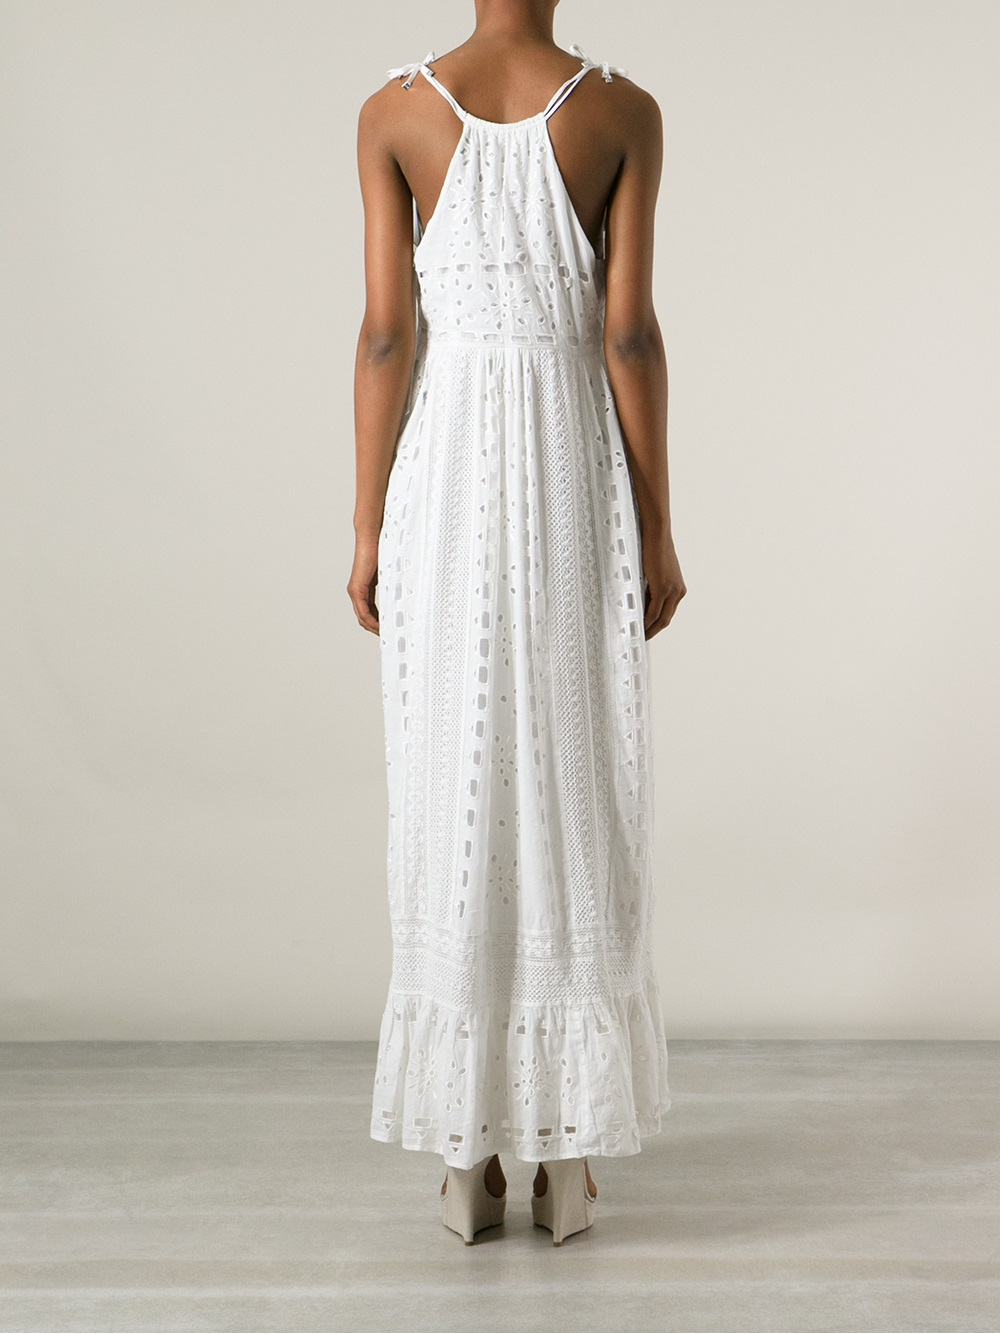 891bd5019fed Cacharel Eyelet Shift Maxi Dress in White (off white) , Lyst